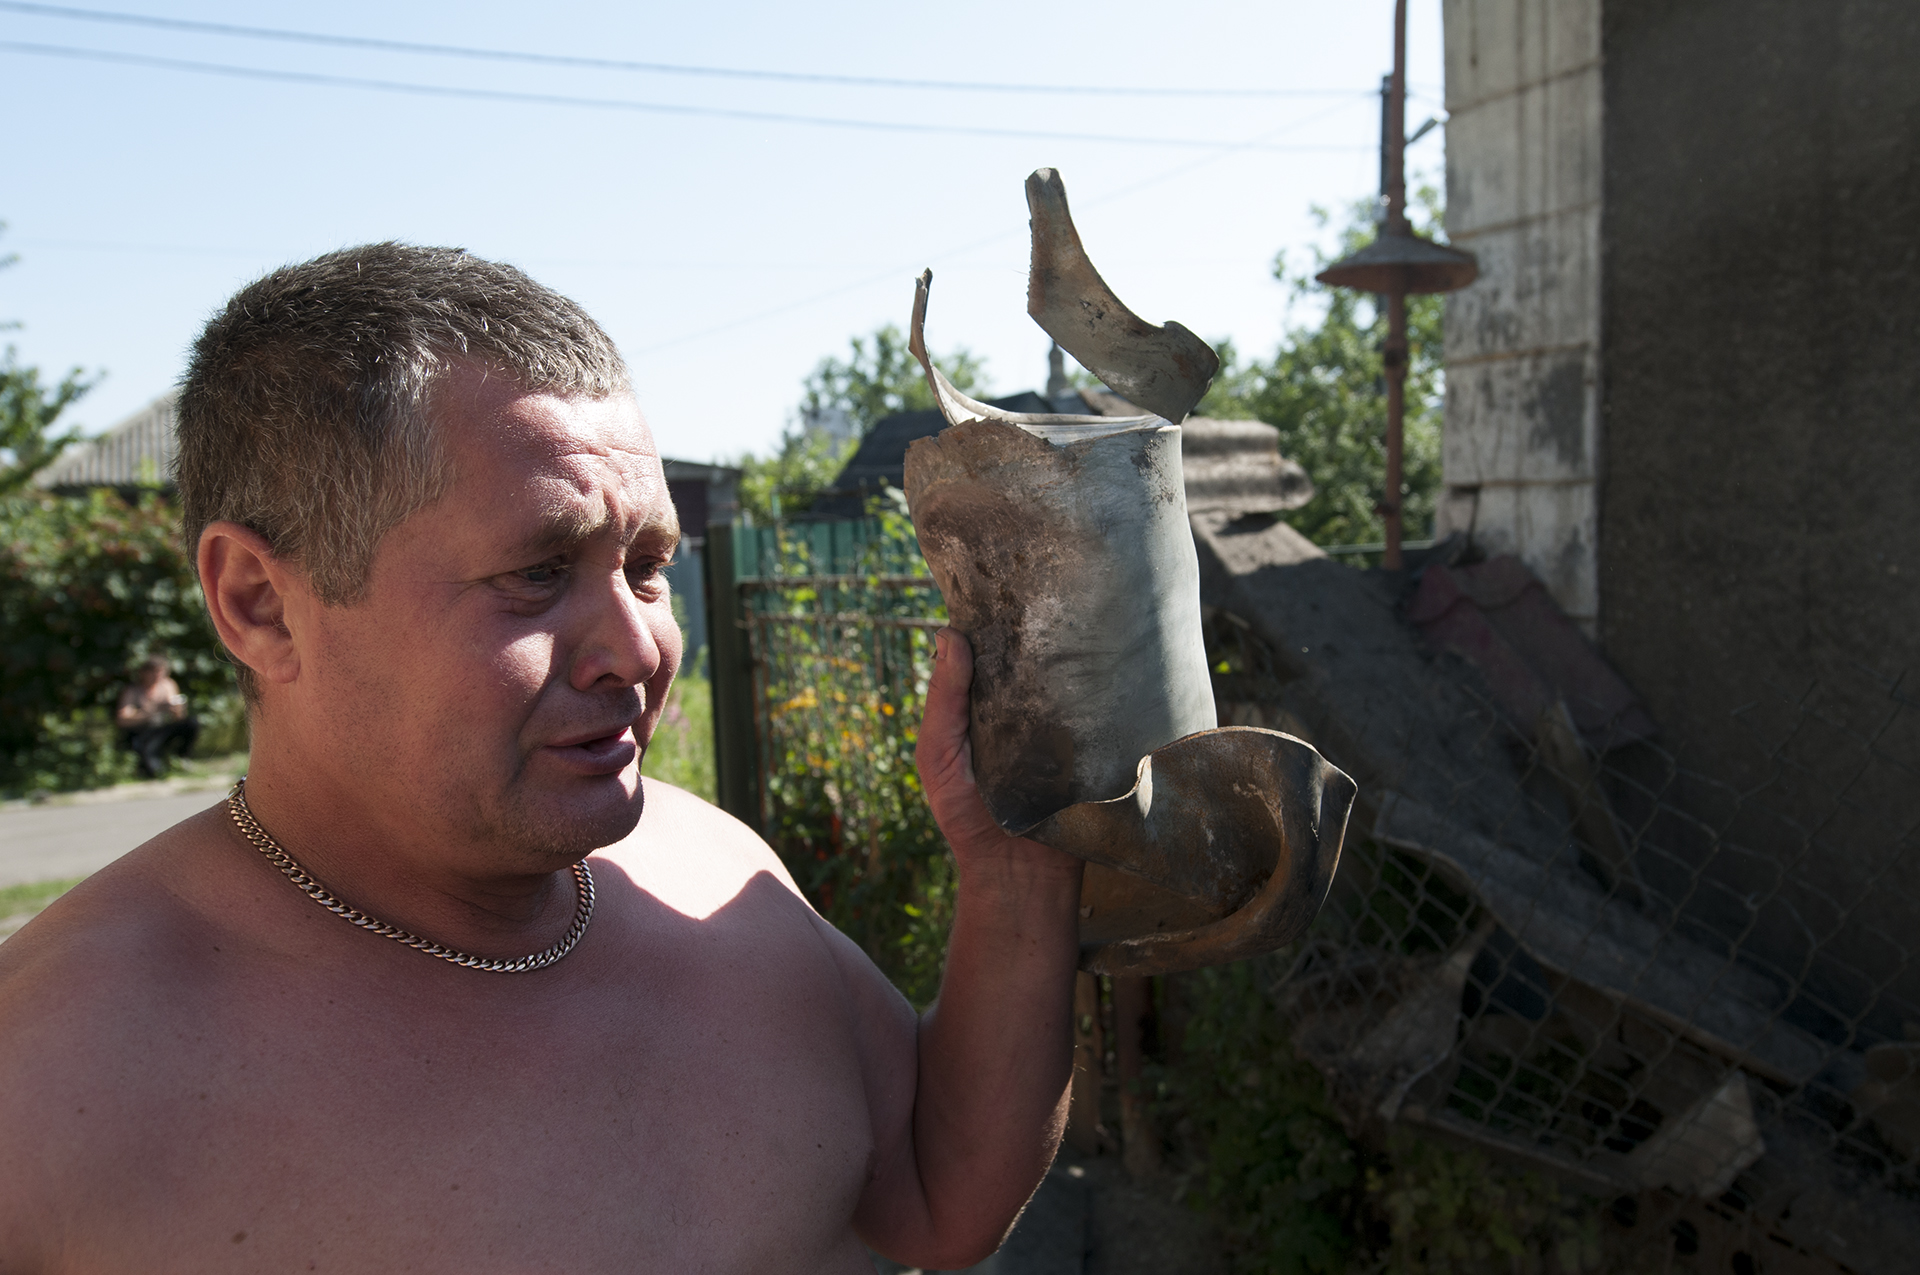 A man holding a piece of the GRAD rocket that has just destroyed his home